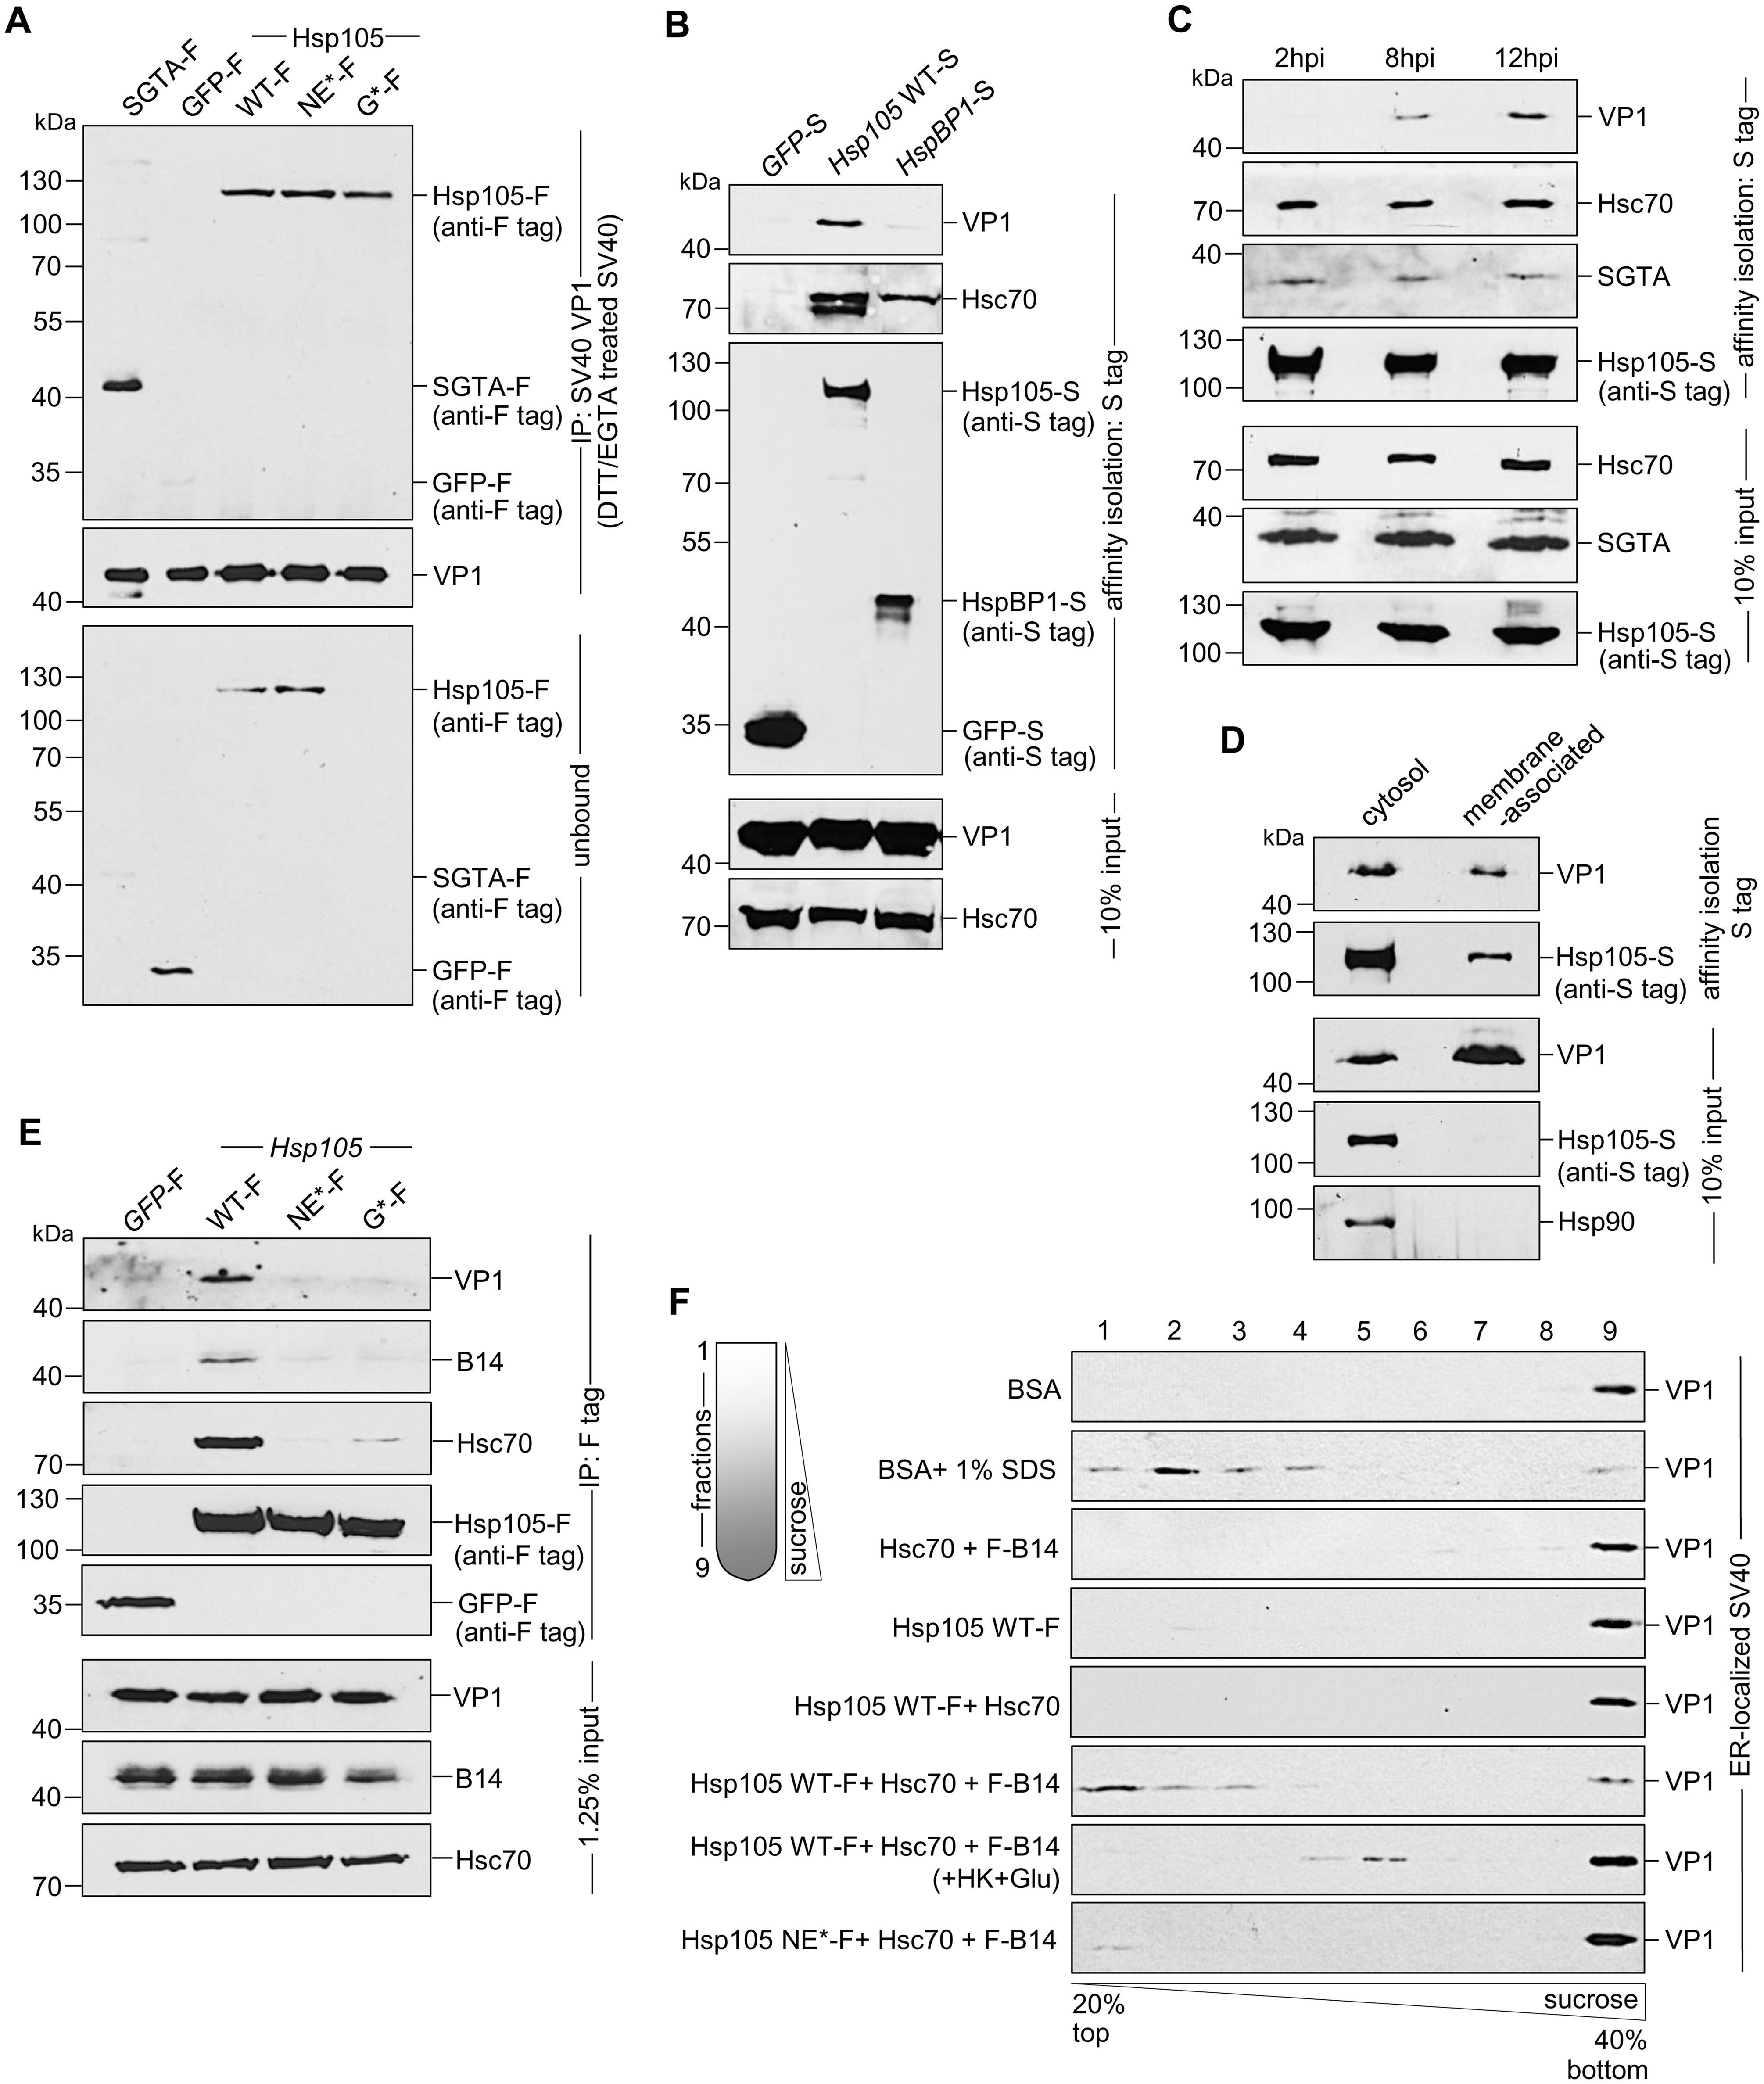 Hsp105 engages ER membrane-penetrating SV40 and promotes disassembly of the virus.